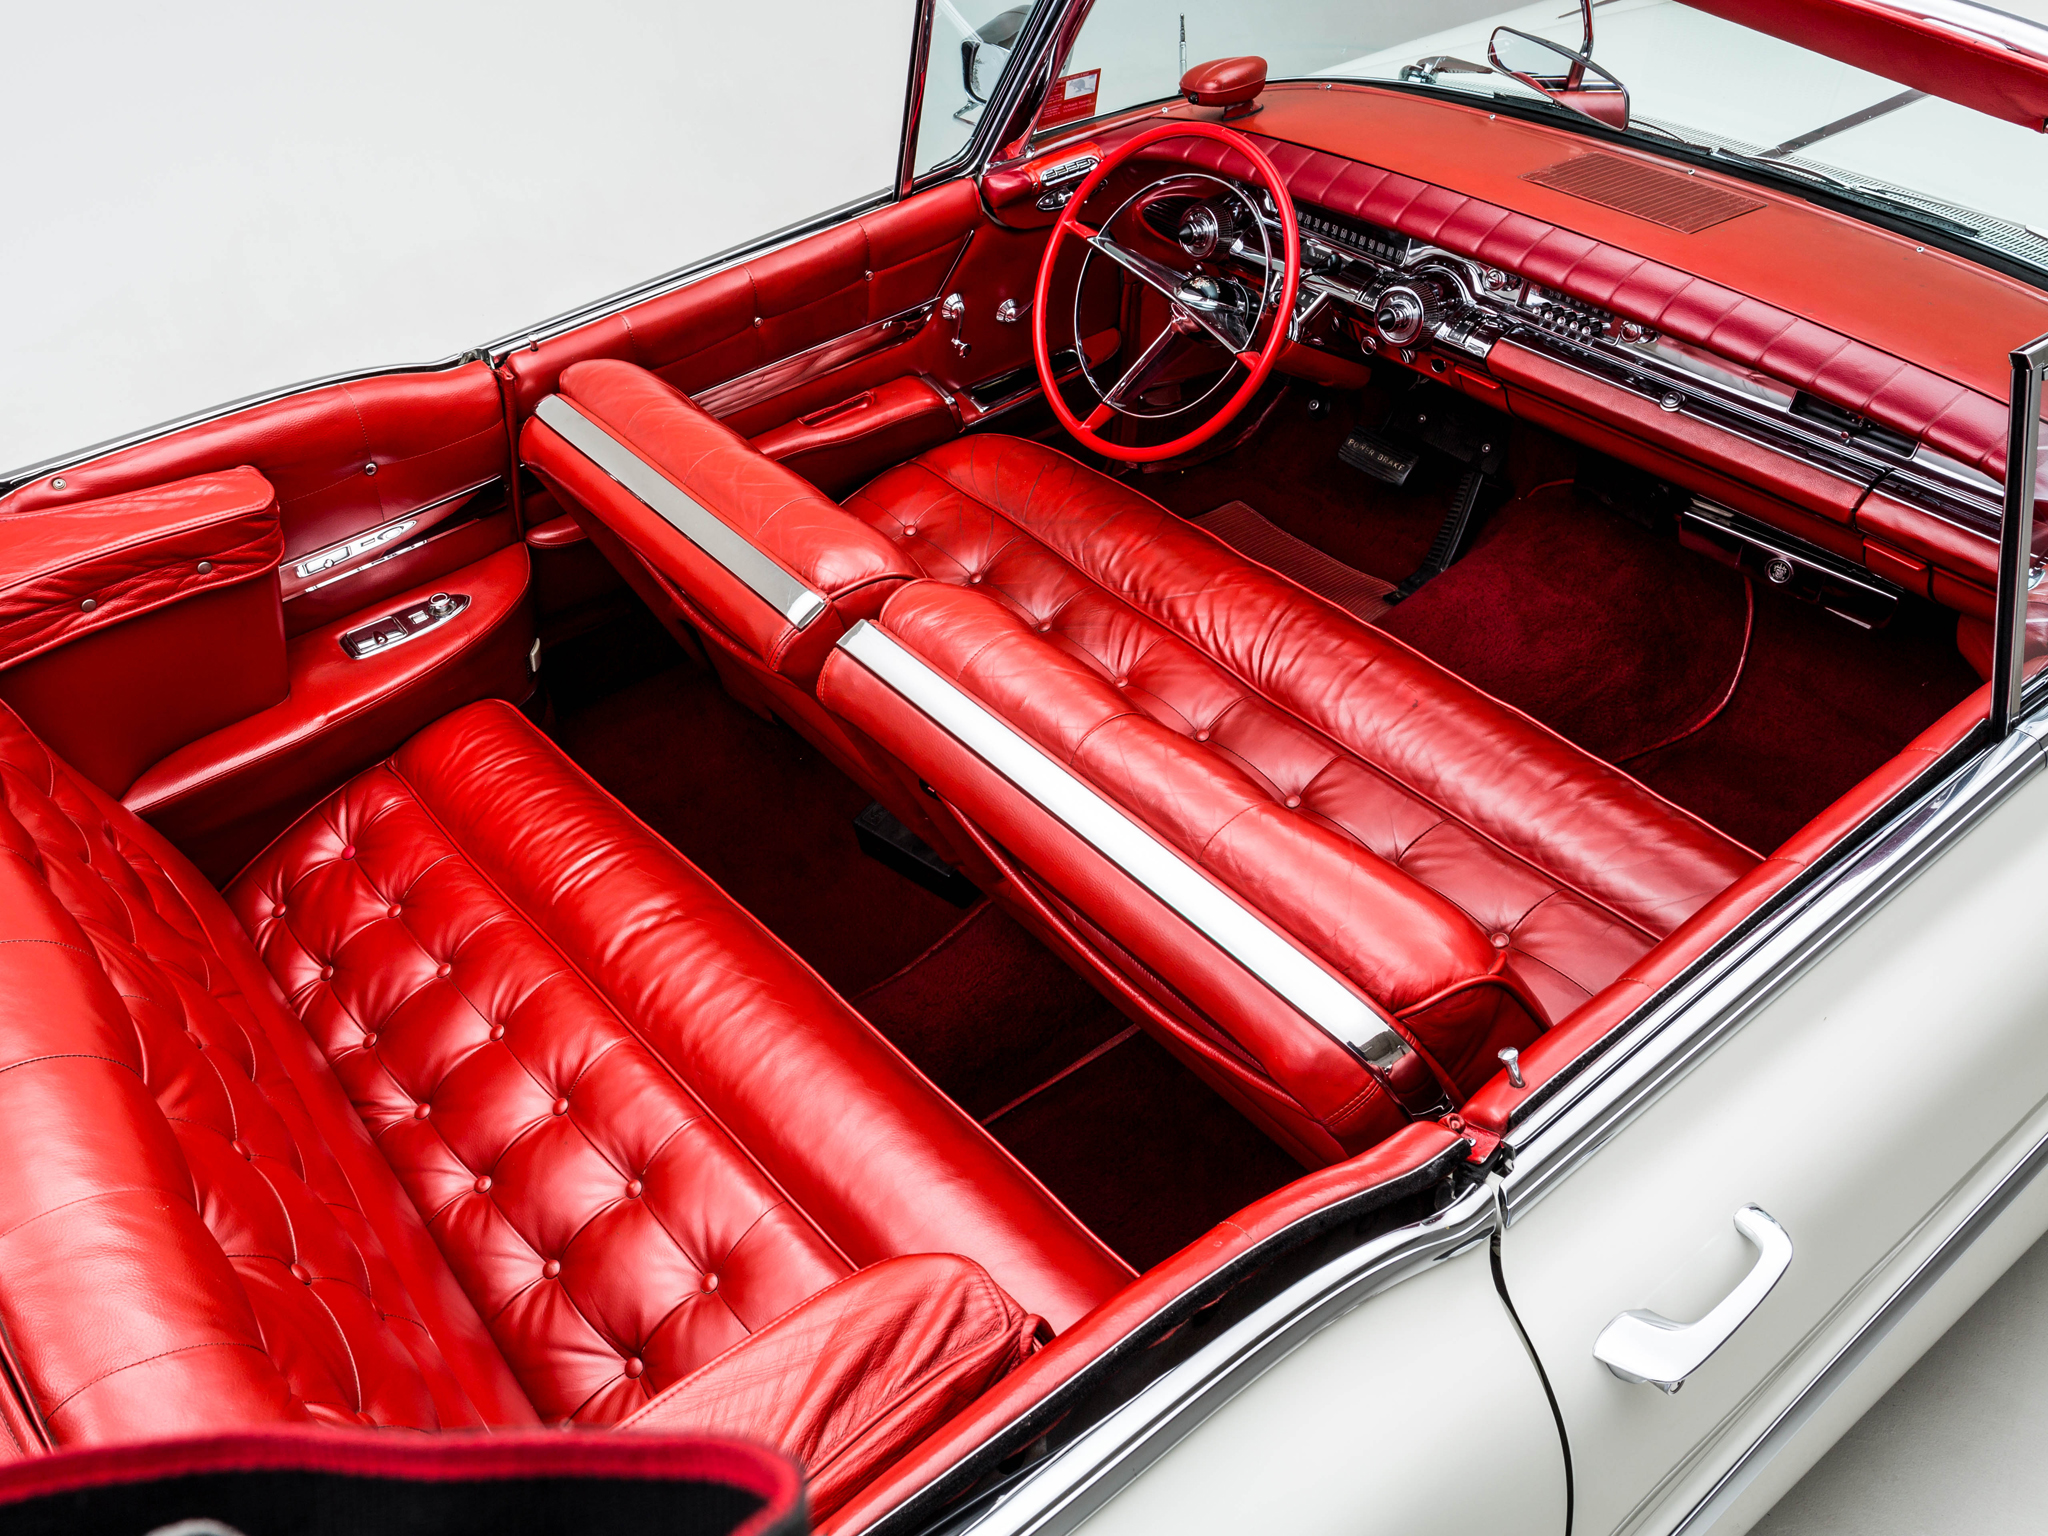 Large Size Wallpapers Of Cars 1958 Buick Limited Convertible 756 4867x Luxury Retro